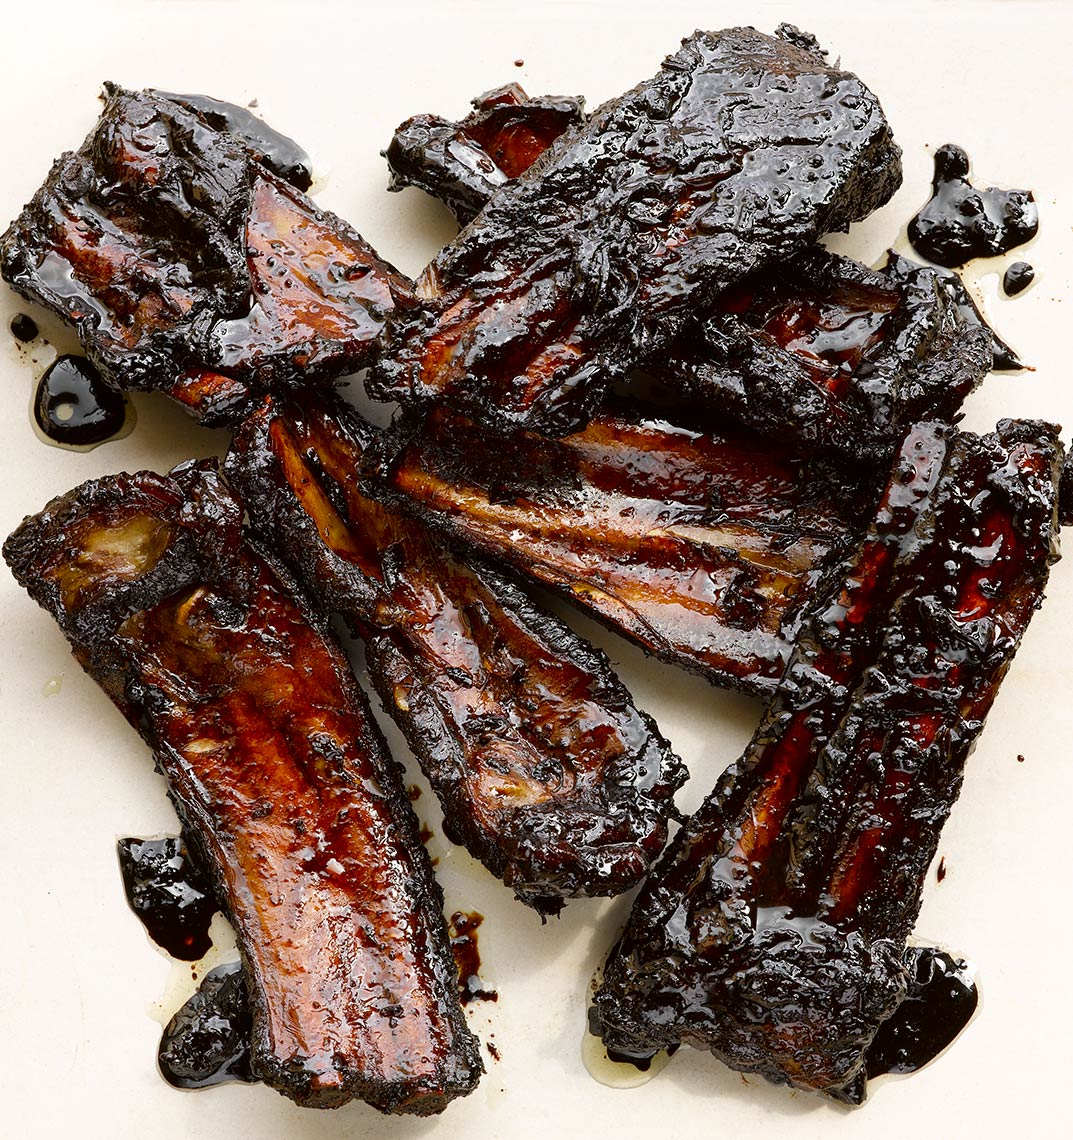 River Cottage Sticky ribs | Colin Campbell - Food Photographer